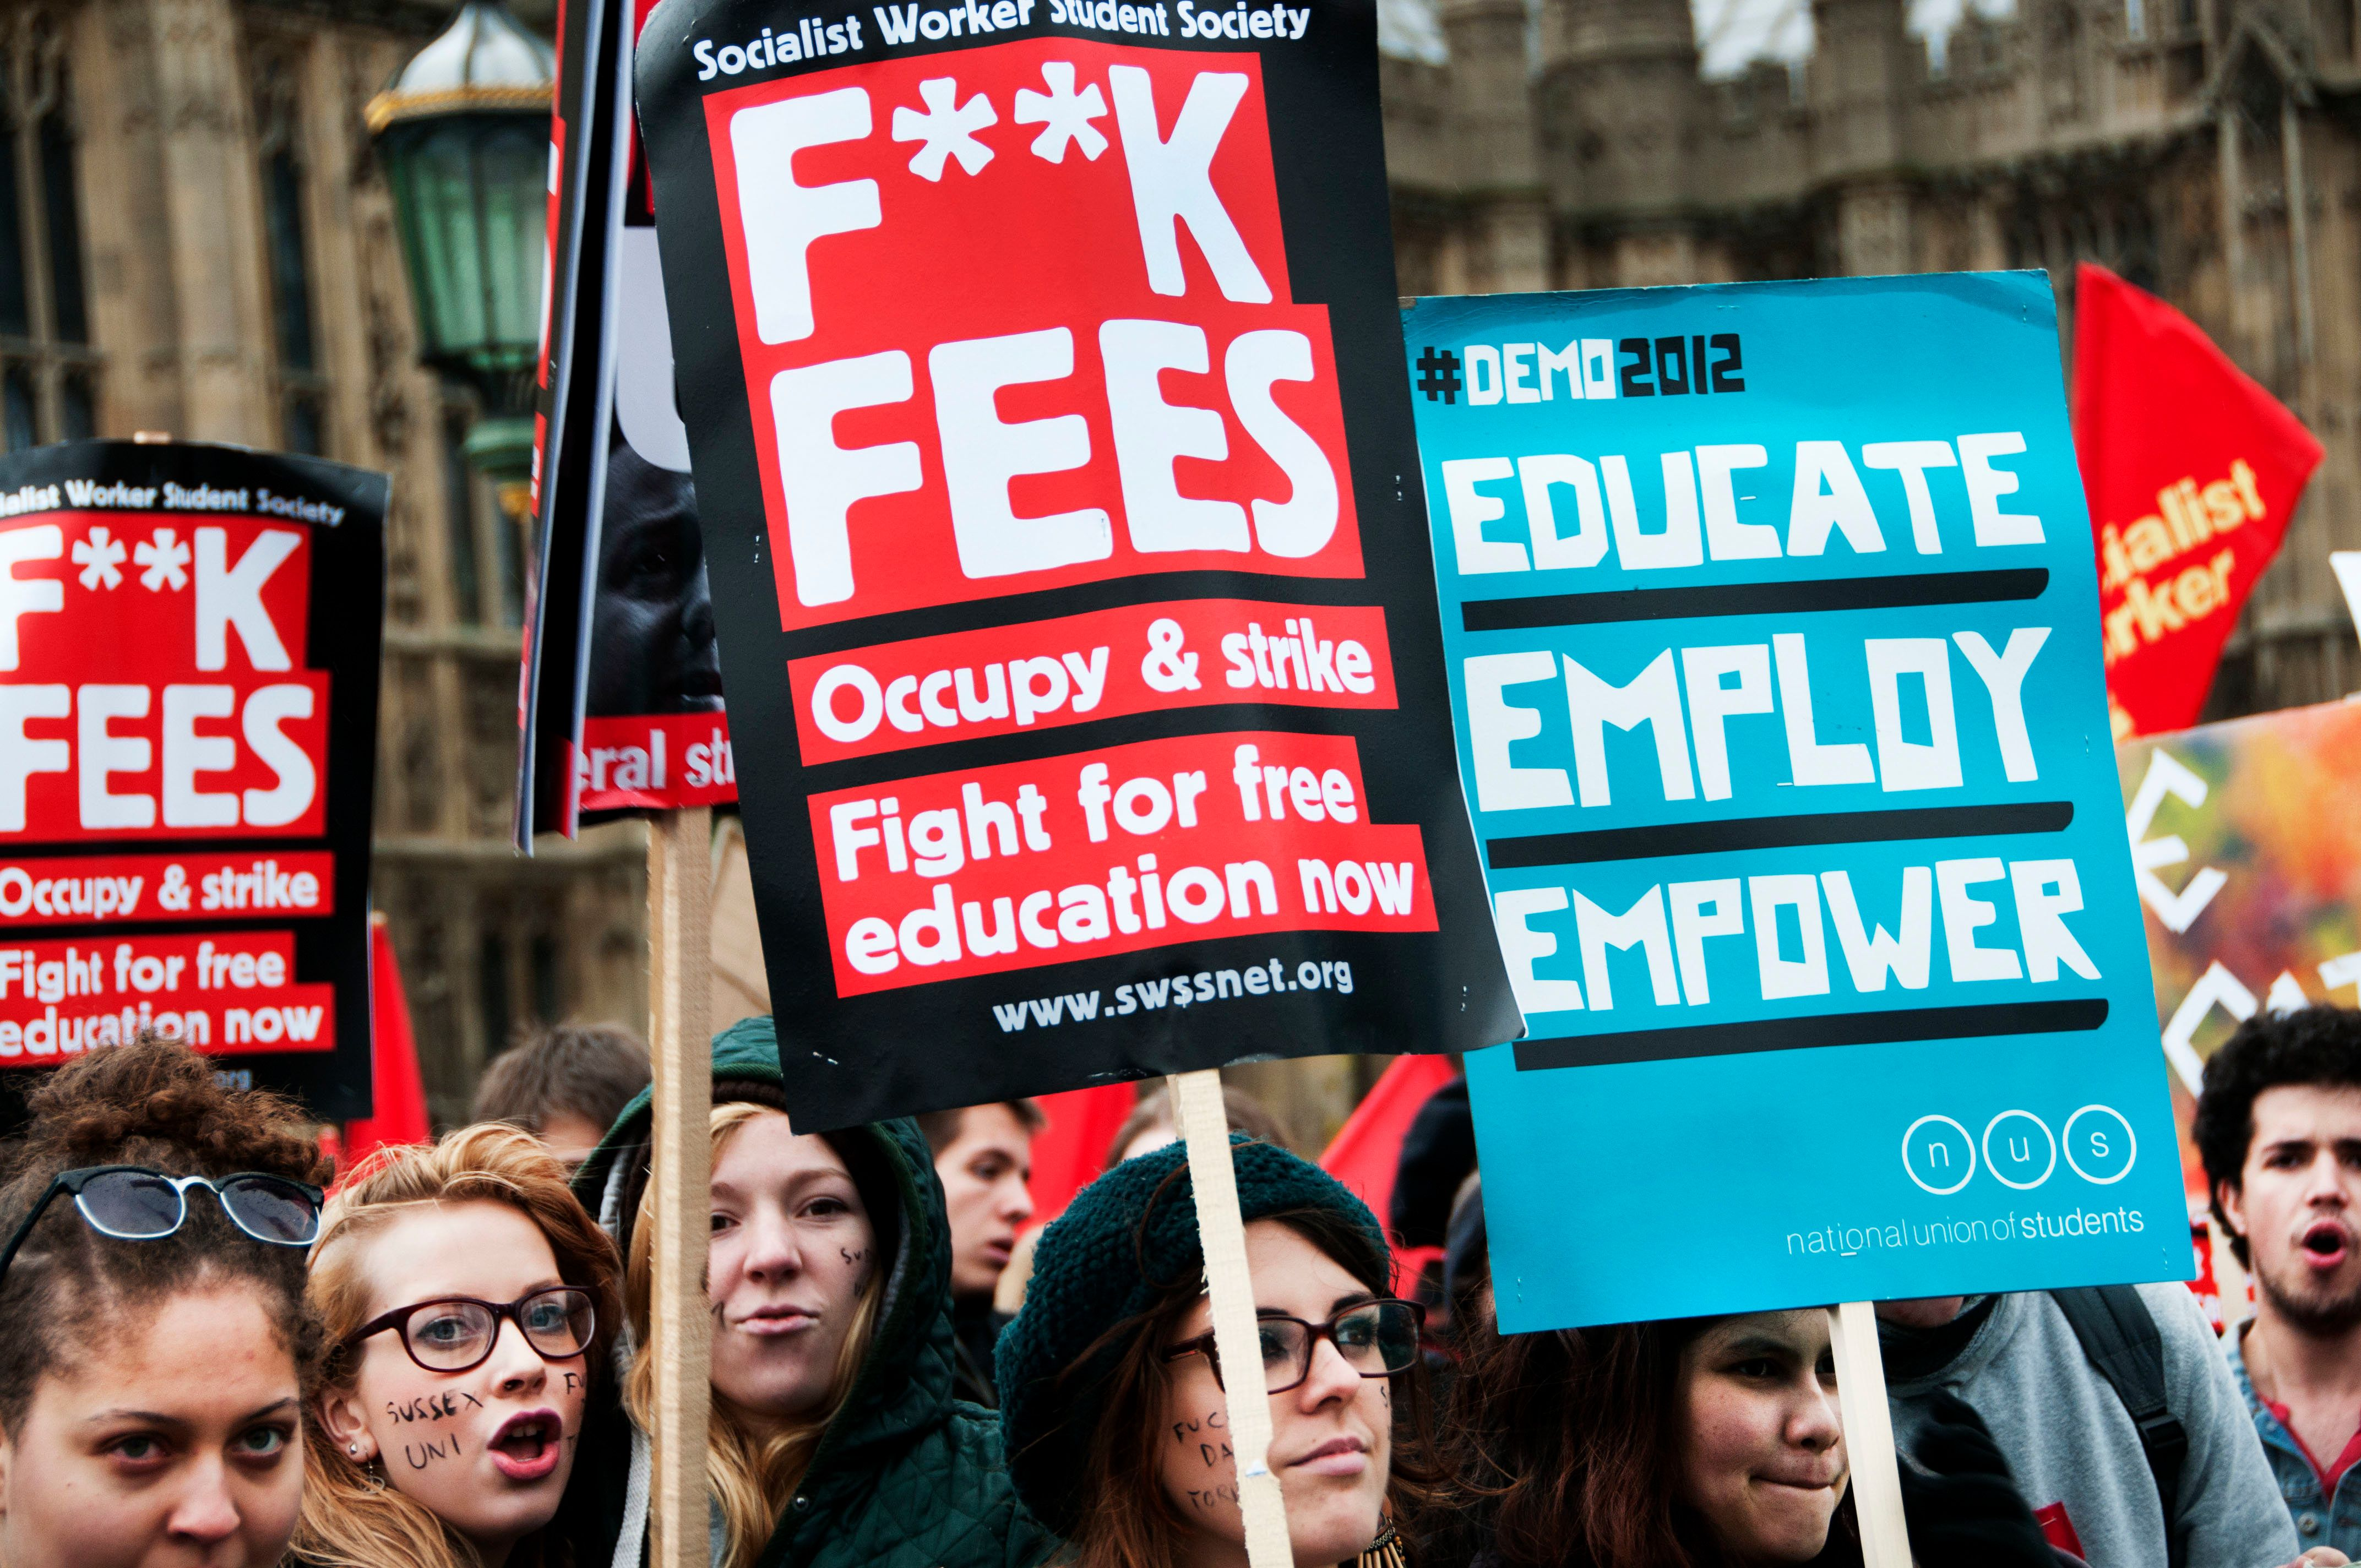 The rise in tuition fees to £9,000 a year led to huge student